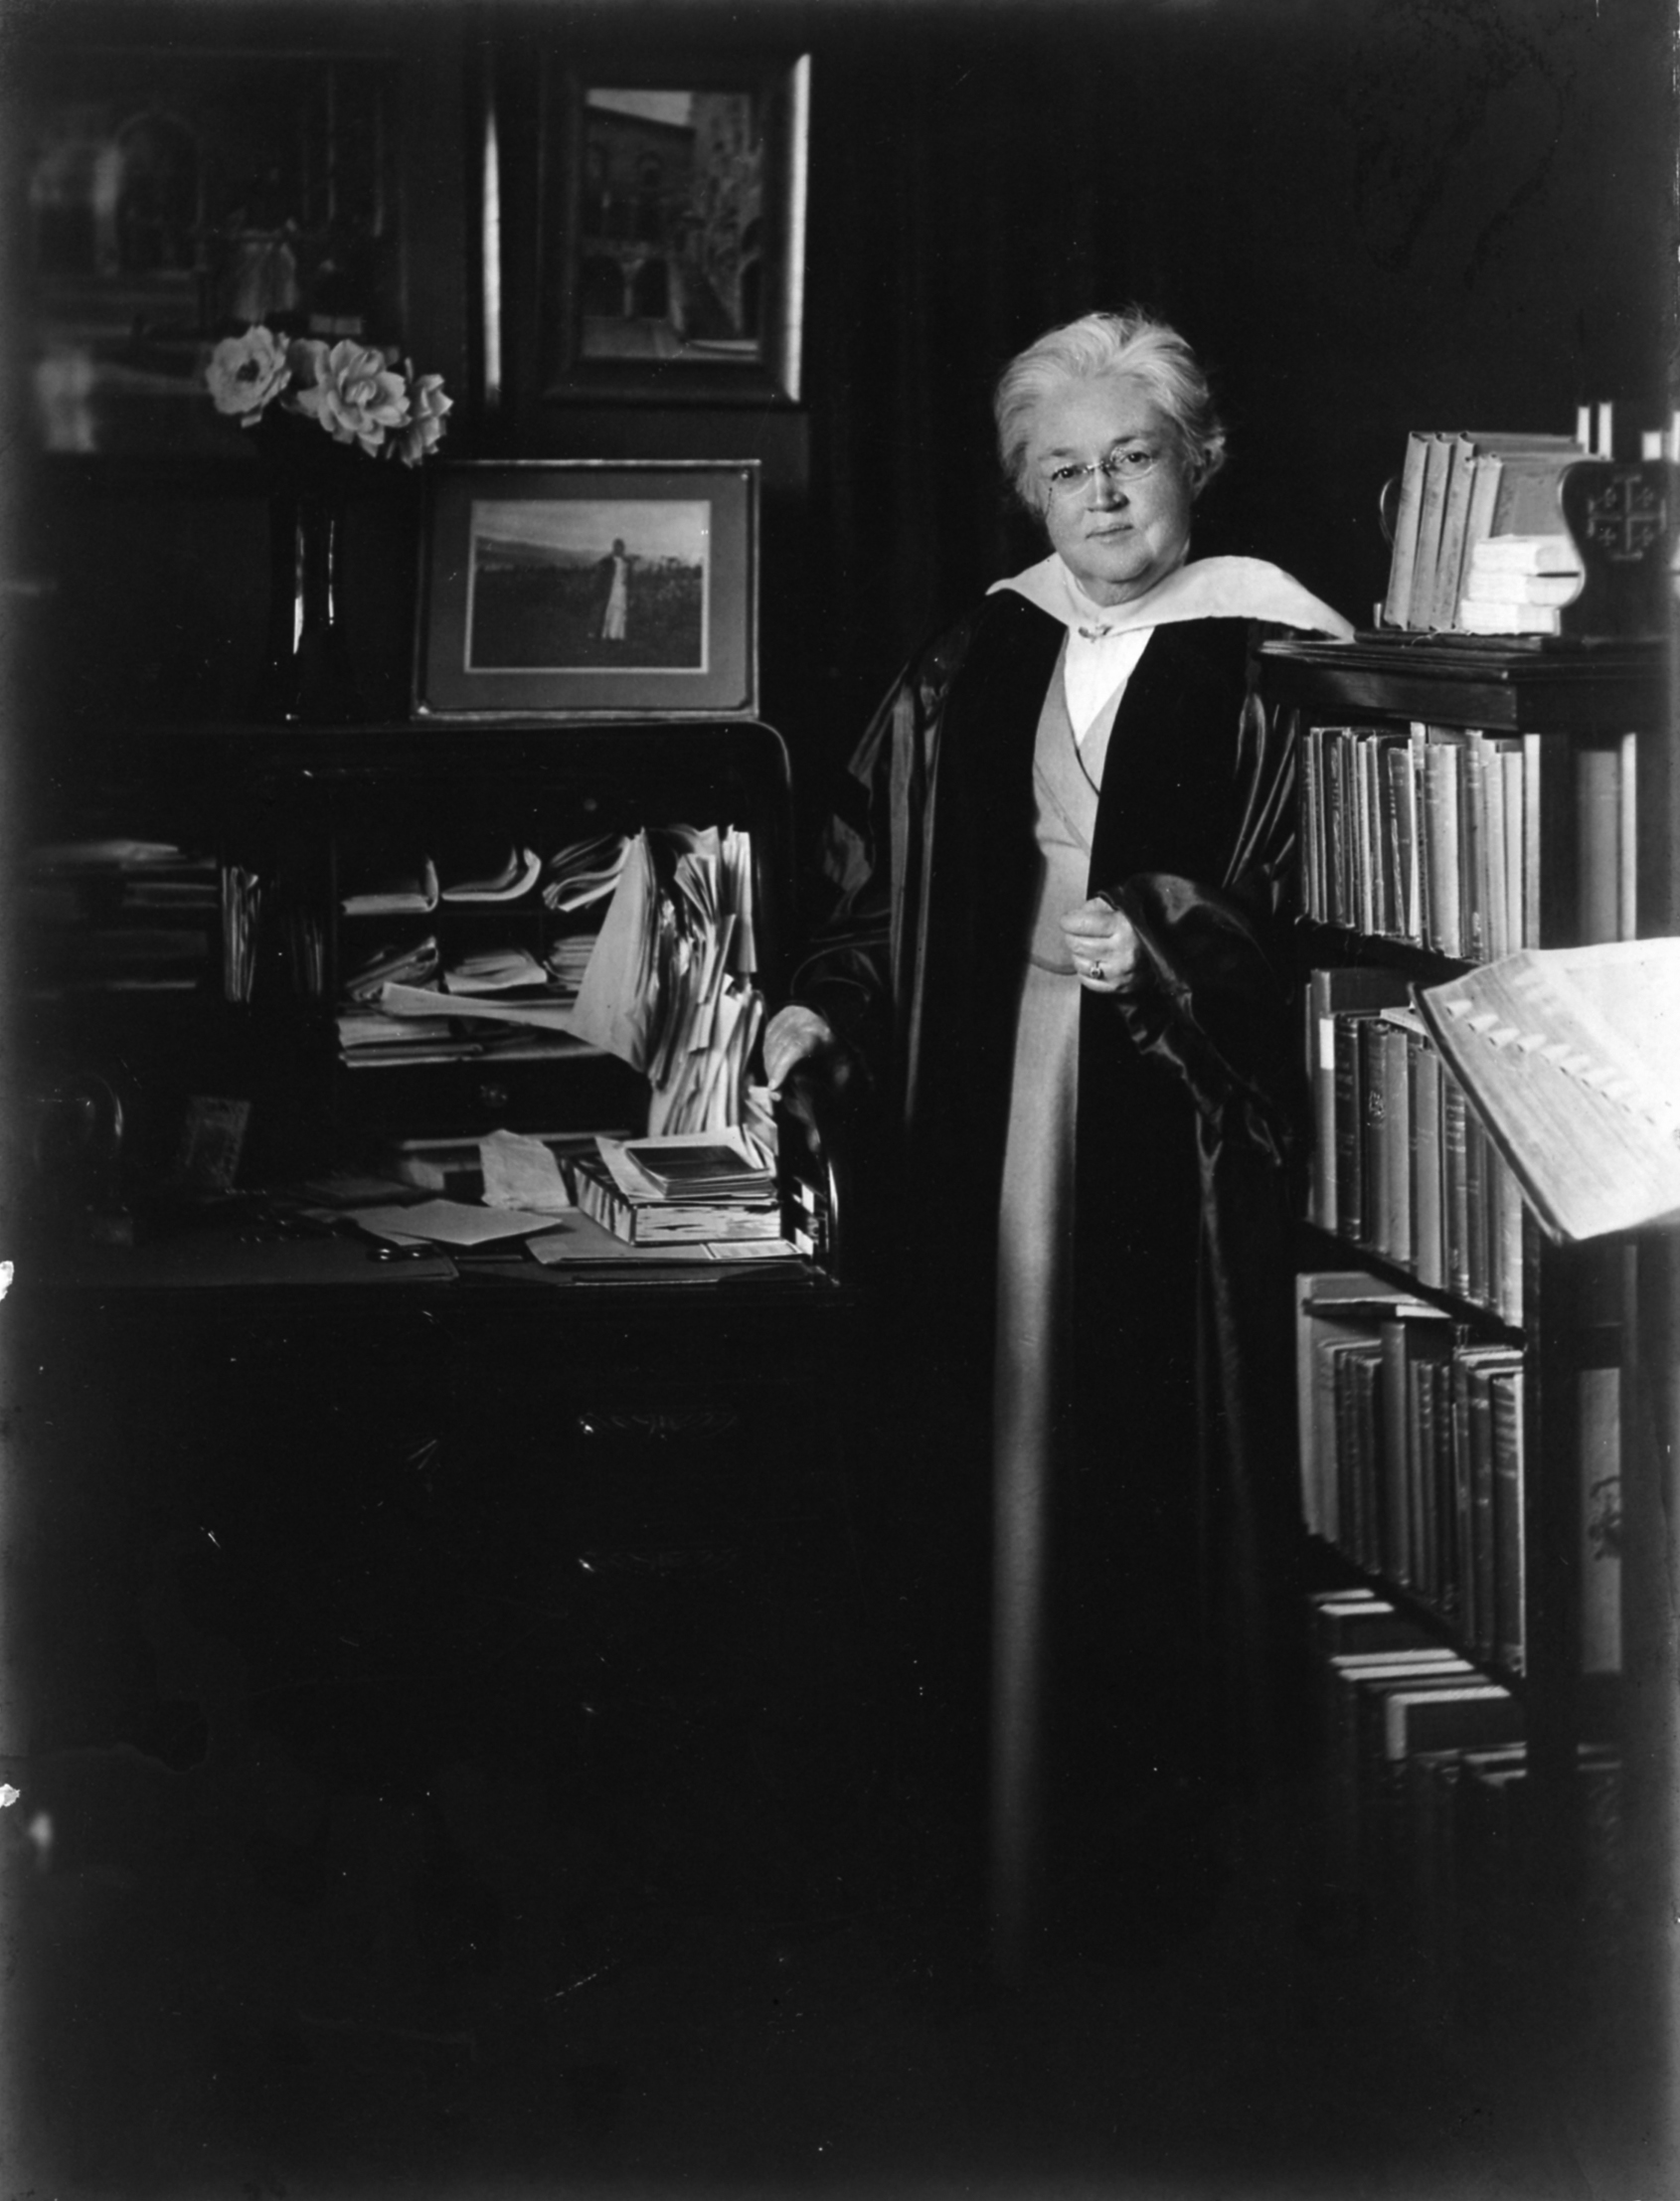 Katharine Lee Bates in 1925 in her study, photo courtesy of Melinda M. Ponder and the Wellesley College Archives